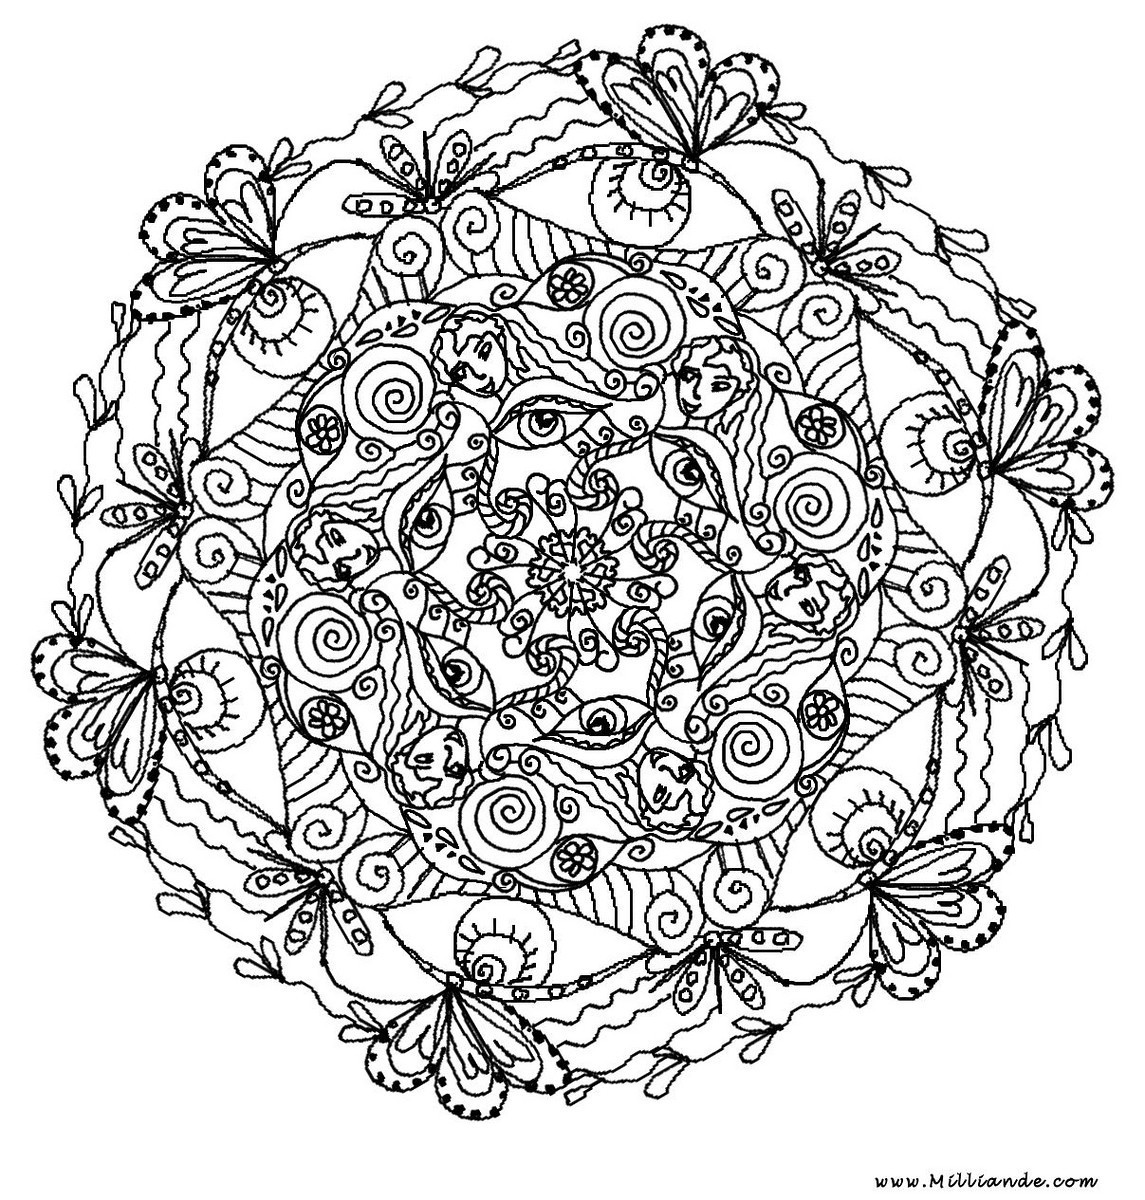 Best ideas about Free Mandala Coloring Pages For Adults . Save or Pin Mindful Mandalas – juste etre just be Now.